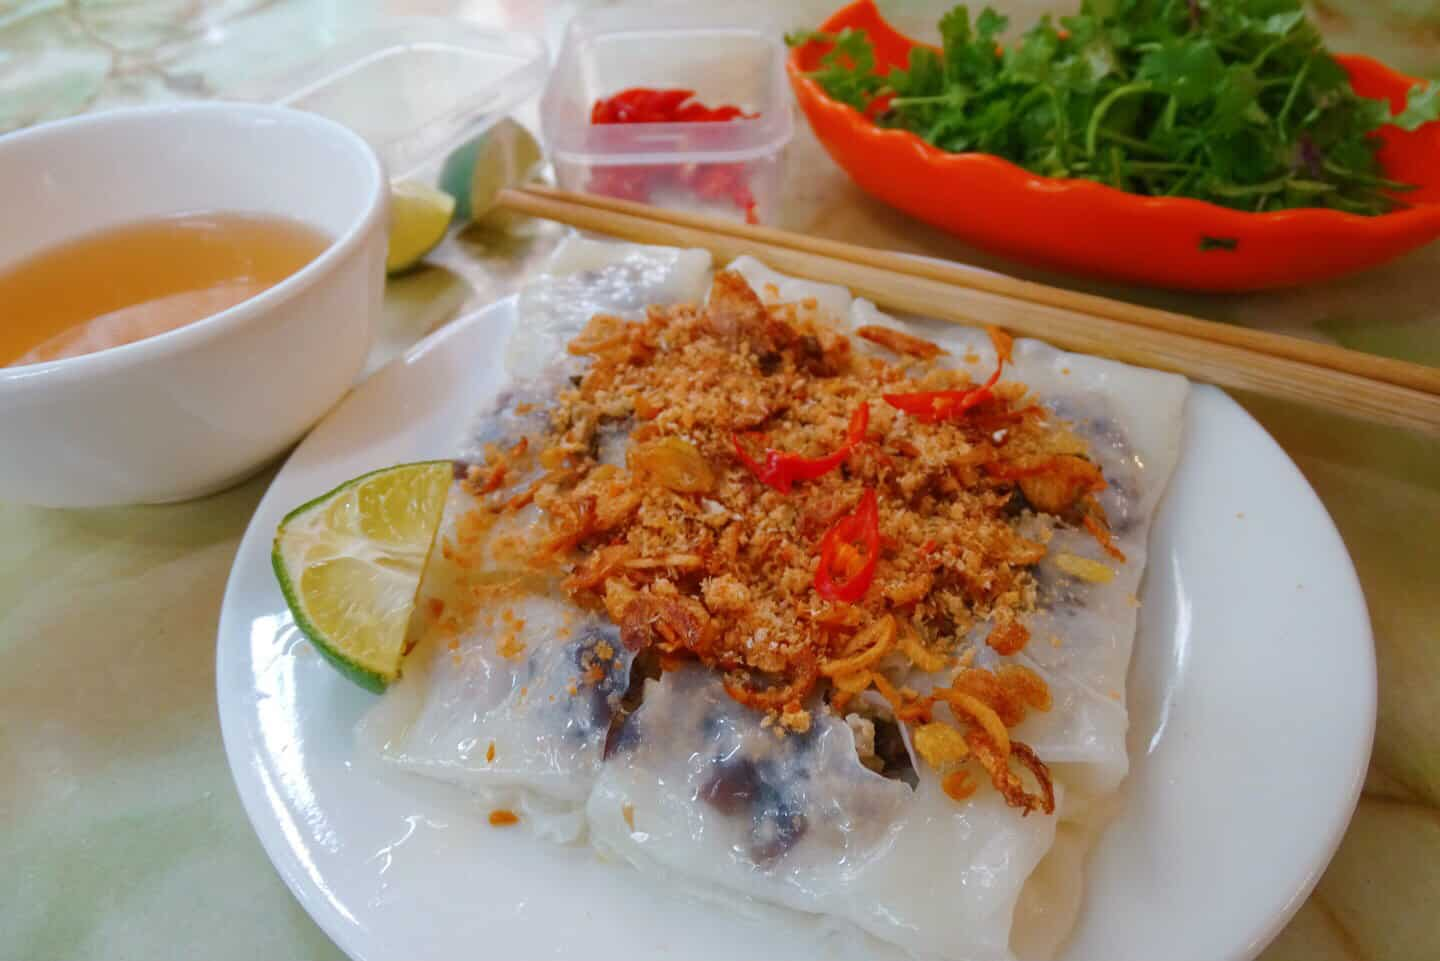 Best Dishes to Eat in Vietnam